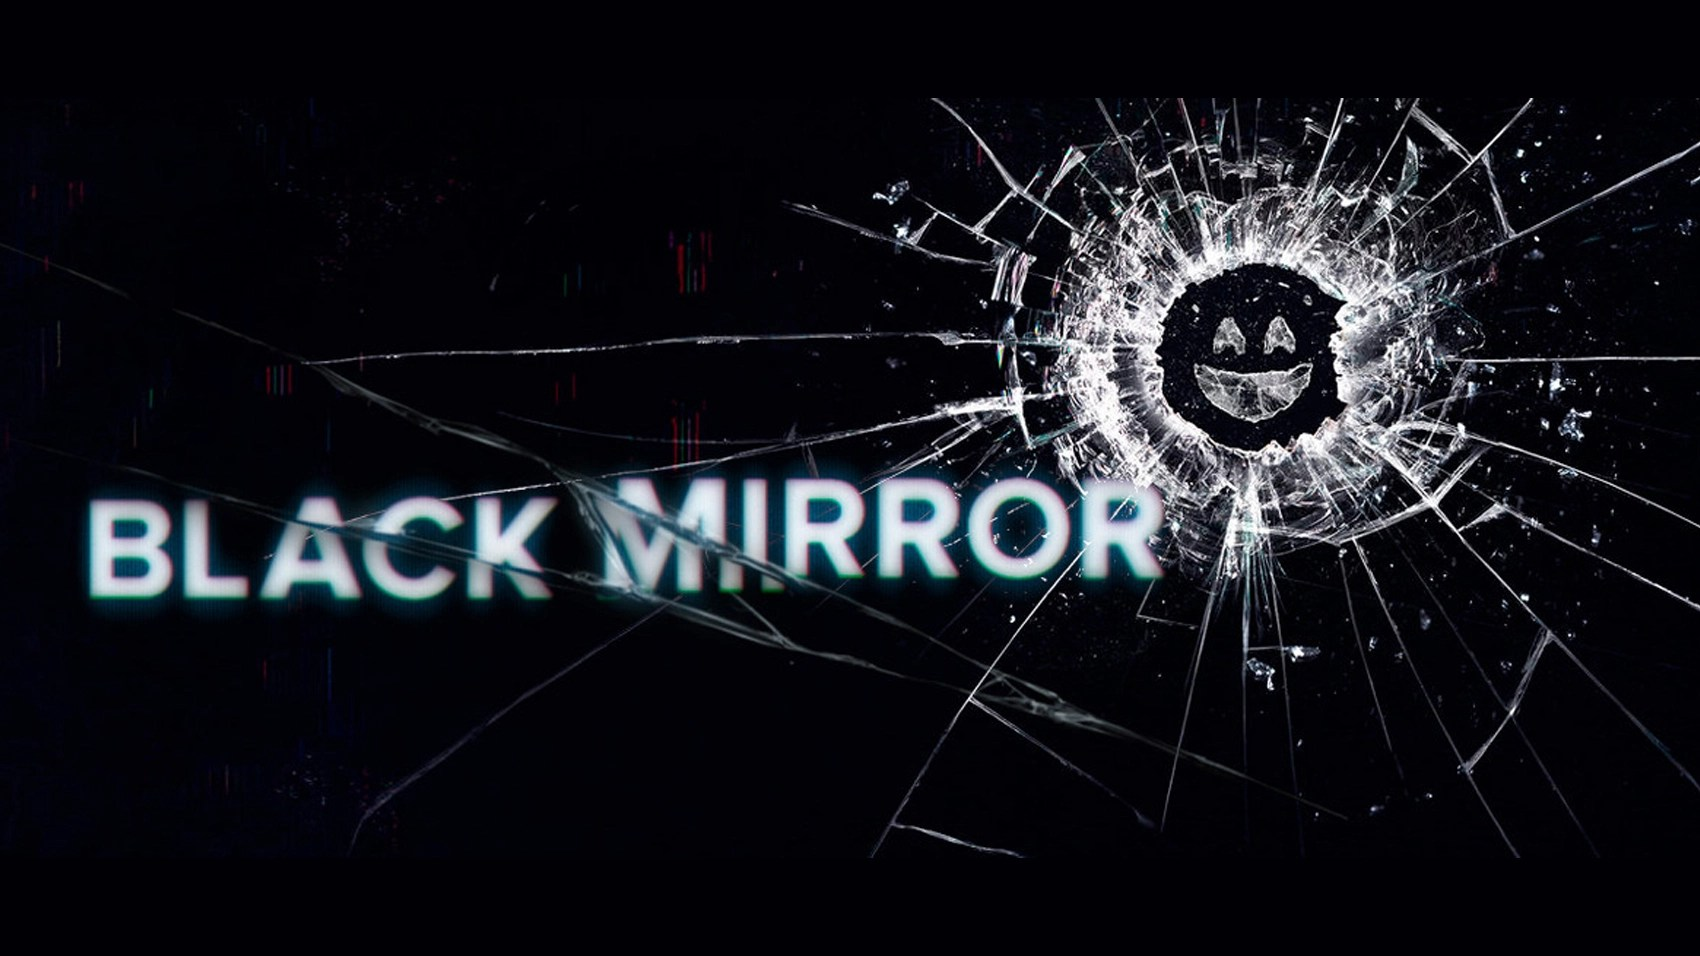 Six New Episodes of Black Mirror Are Coming To Netflix